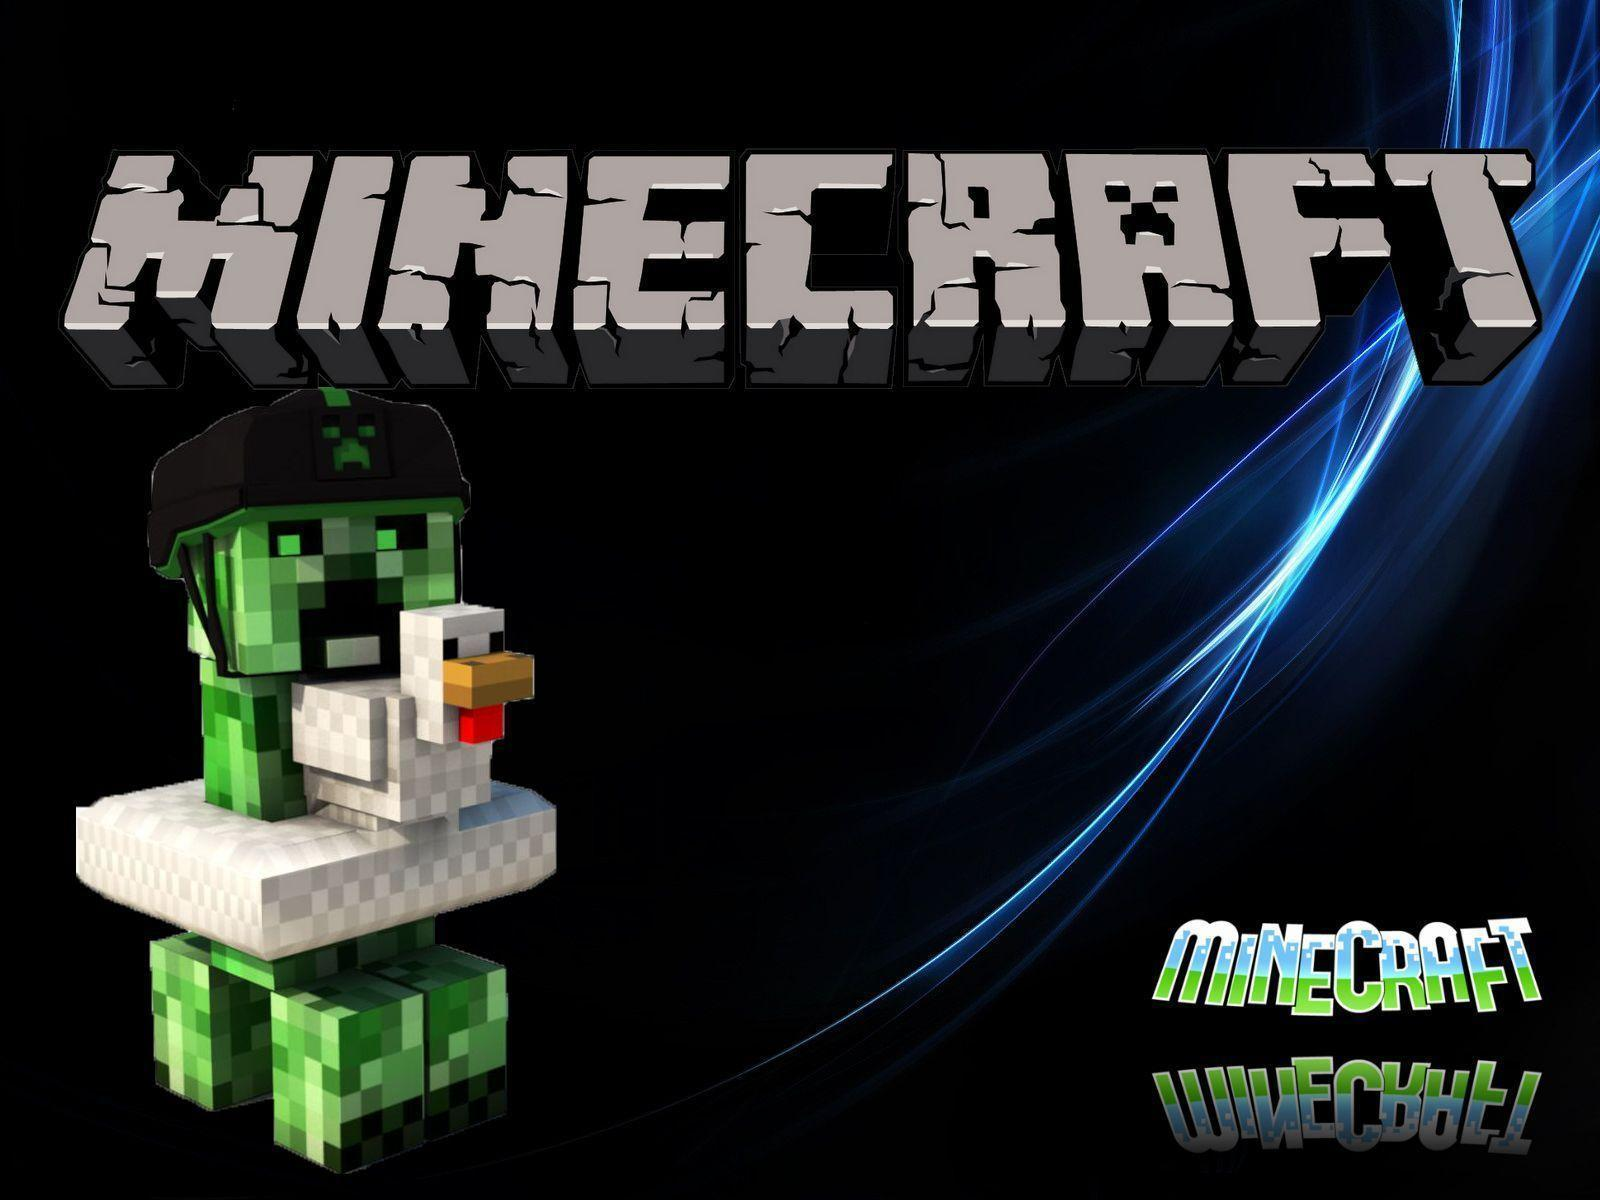 More awesome minecraft wallpapers